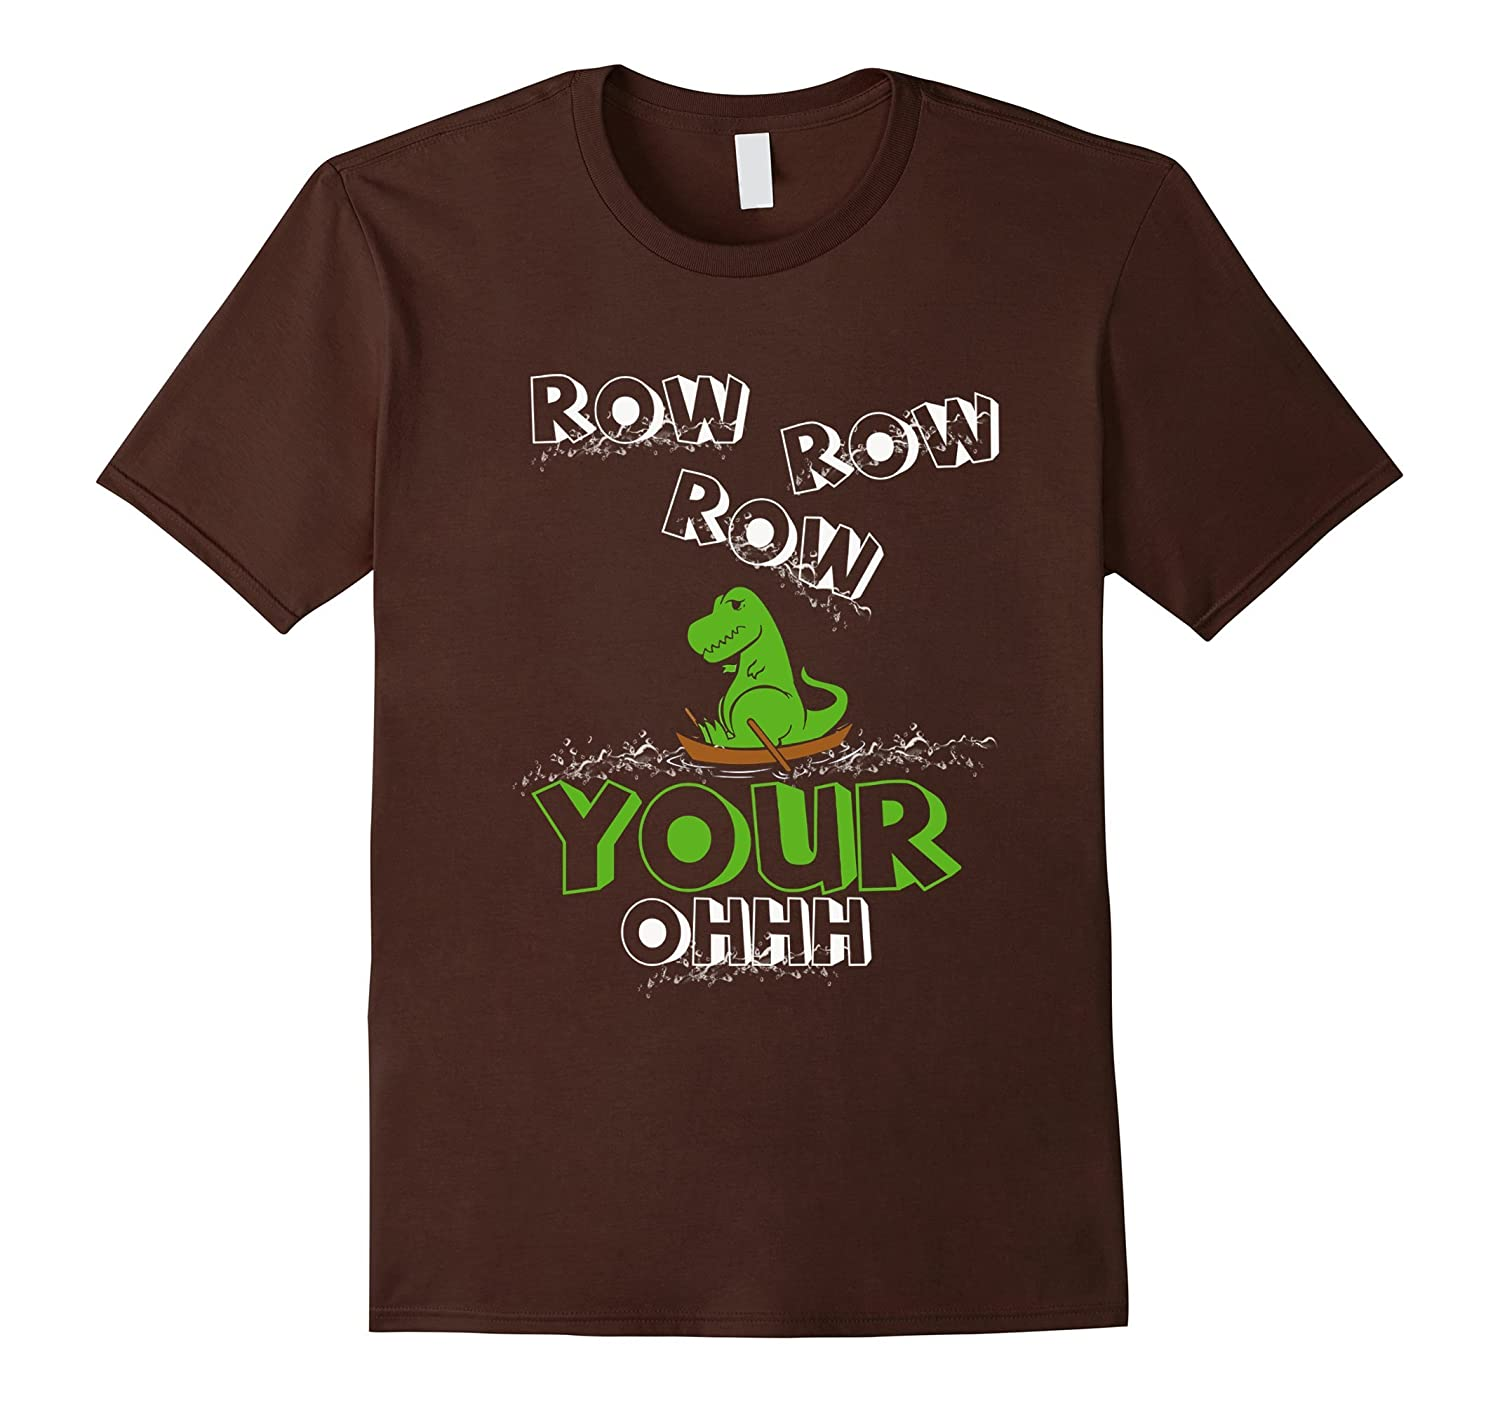 T-Rex Rowing a Boat T-Shirt Row Row Row Your Oh Shirt-CD